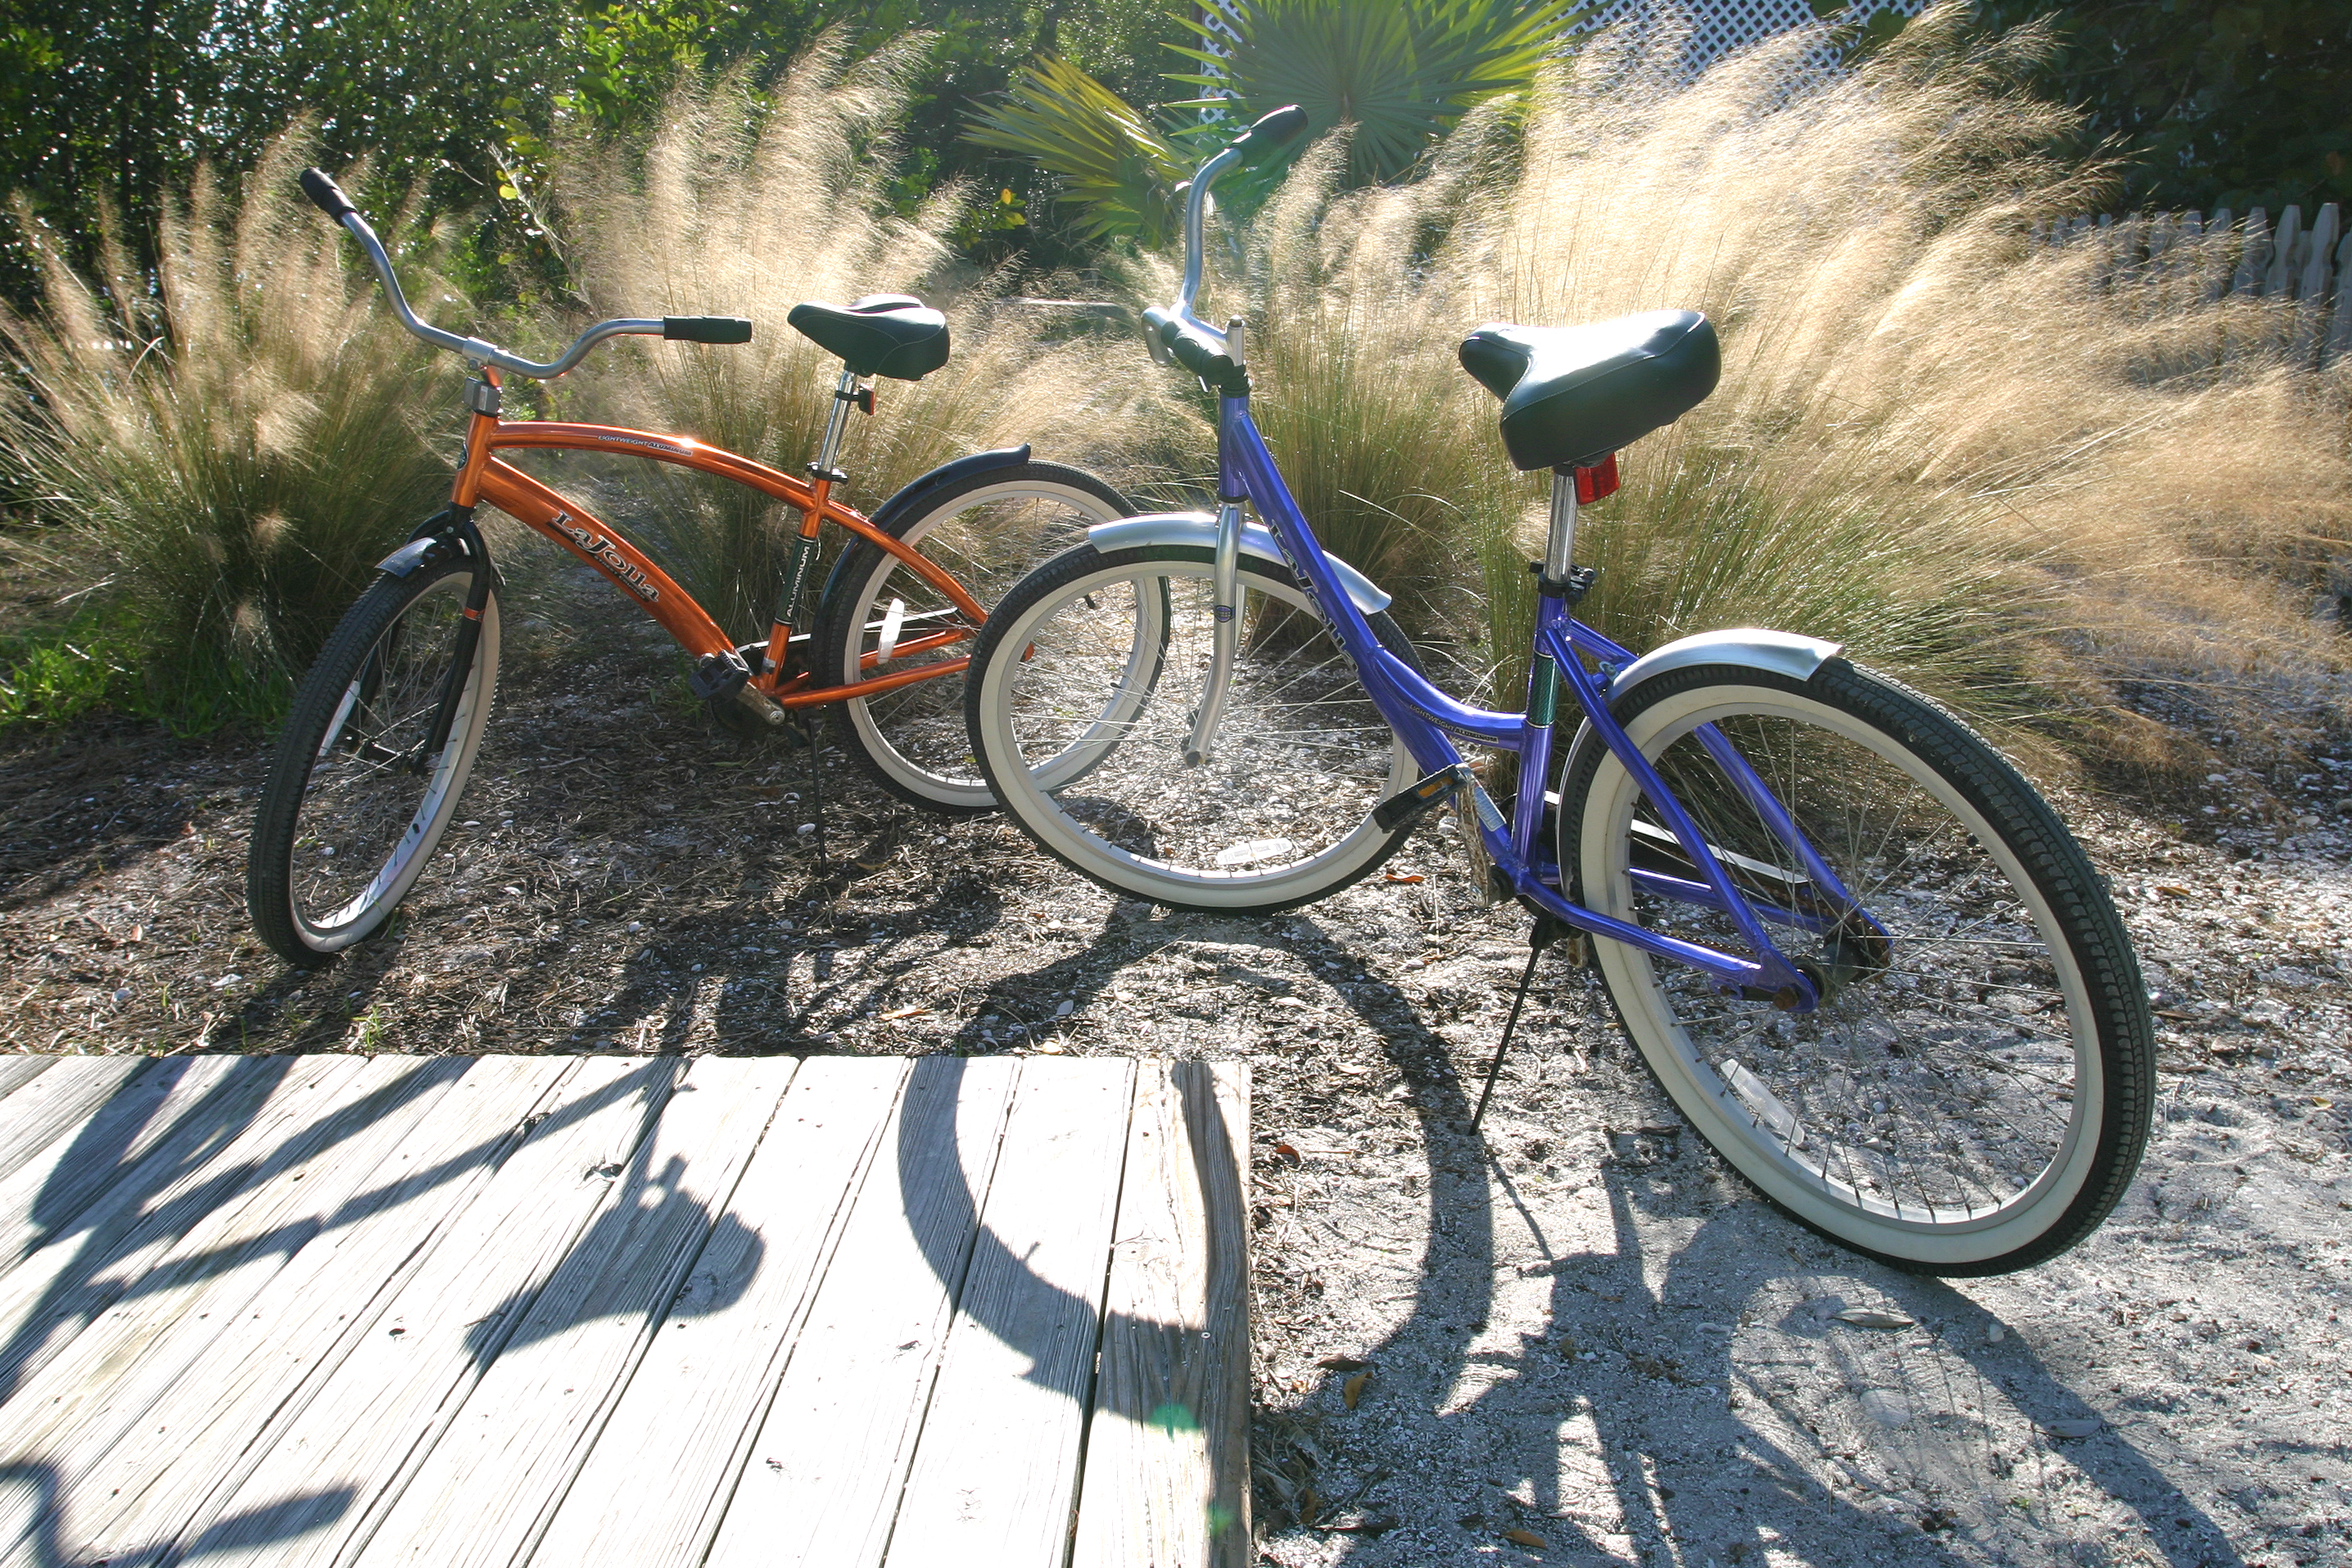 Two beach bikes are provided